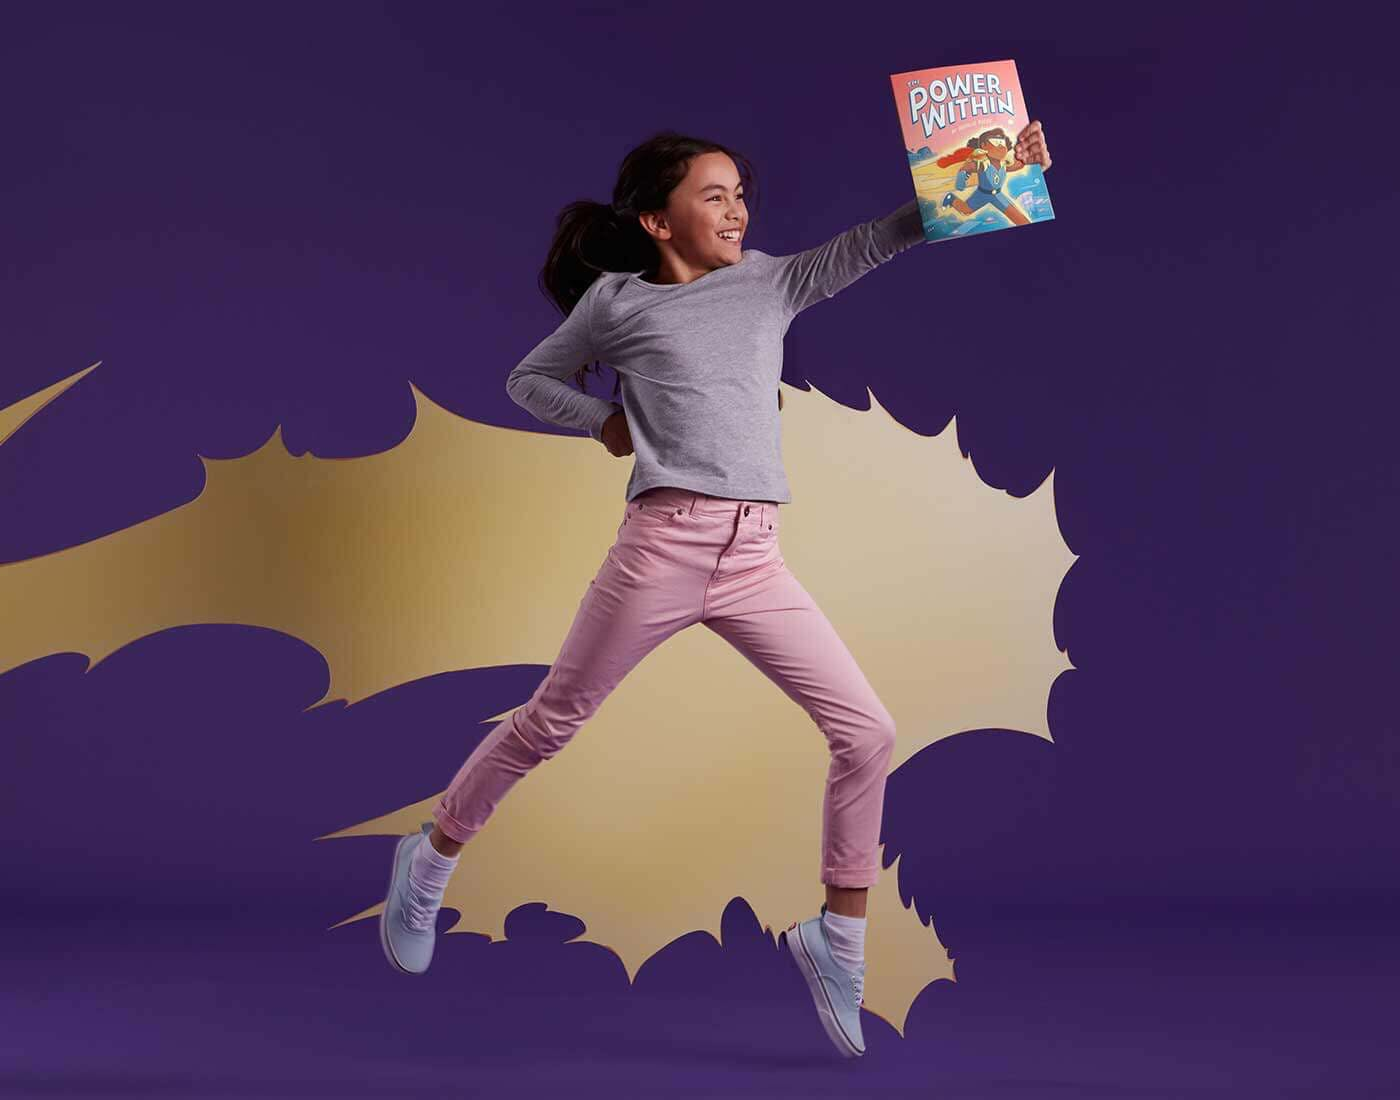 Child holding The Power Within book leaping through the air as an empowered super hero